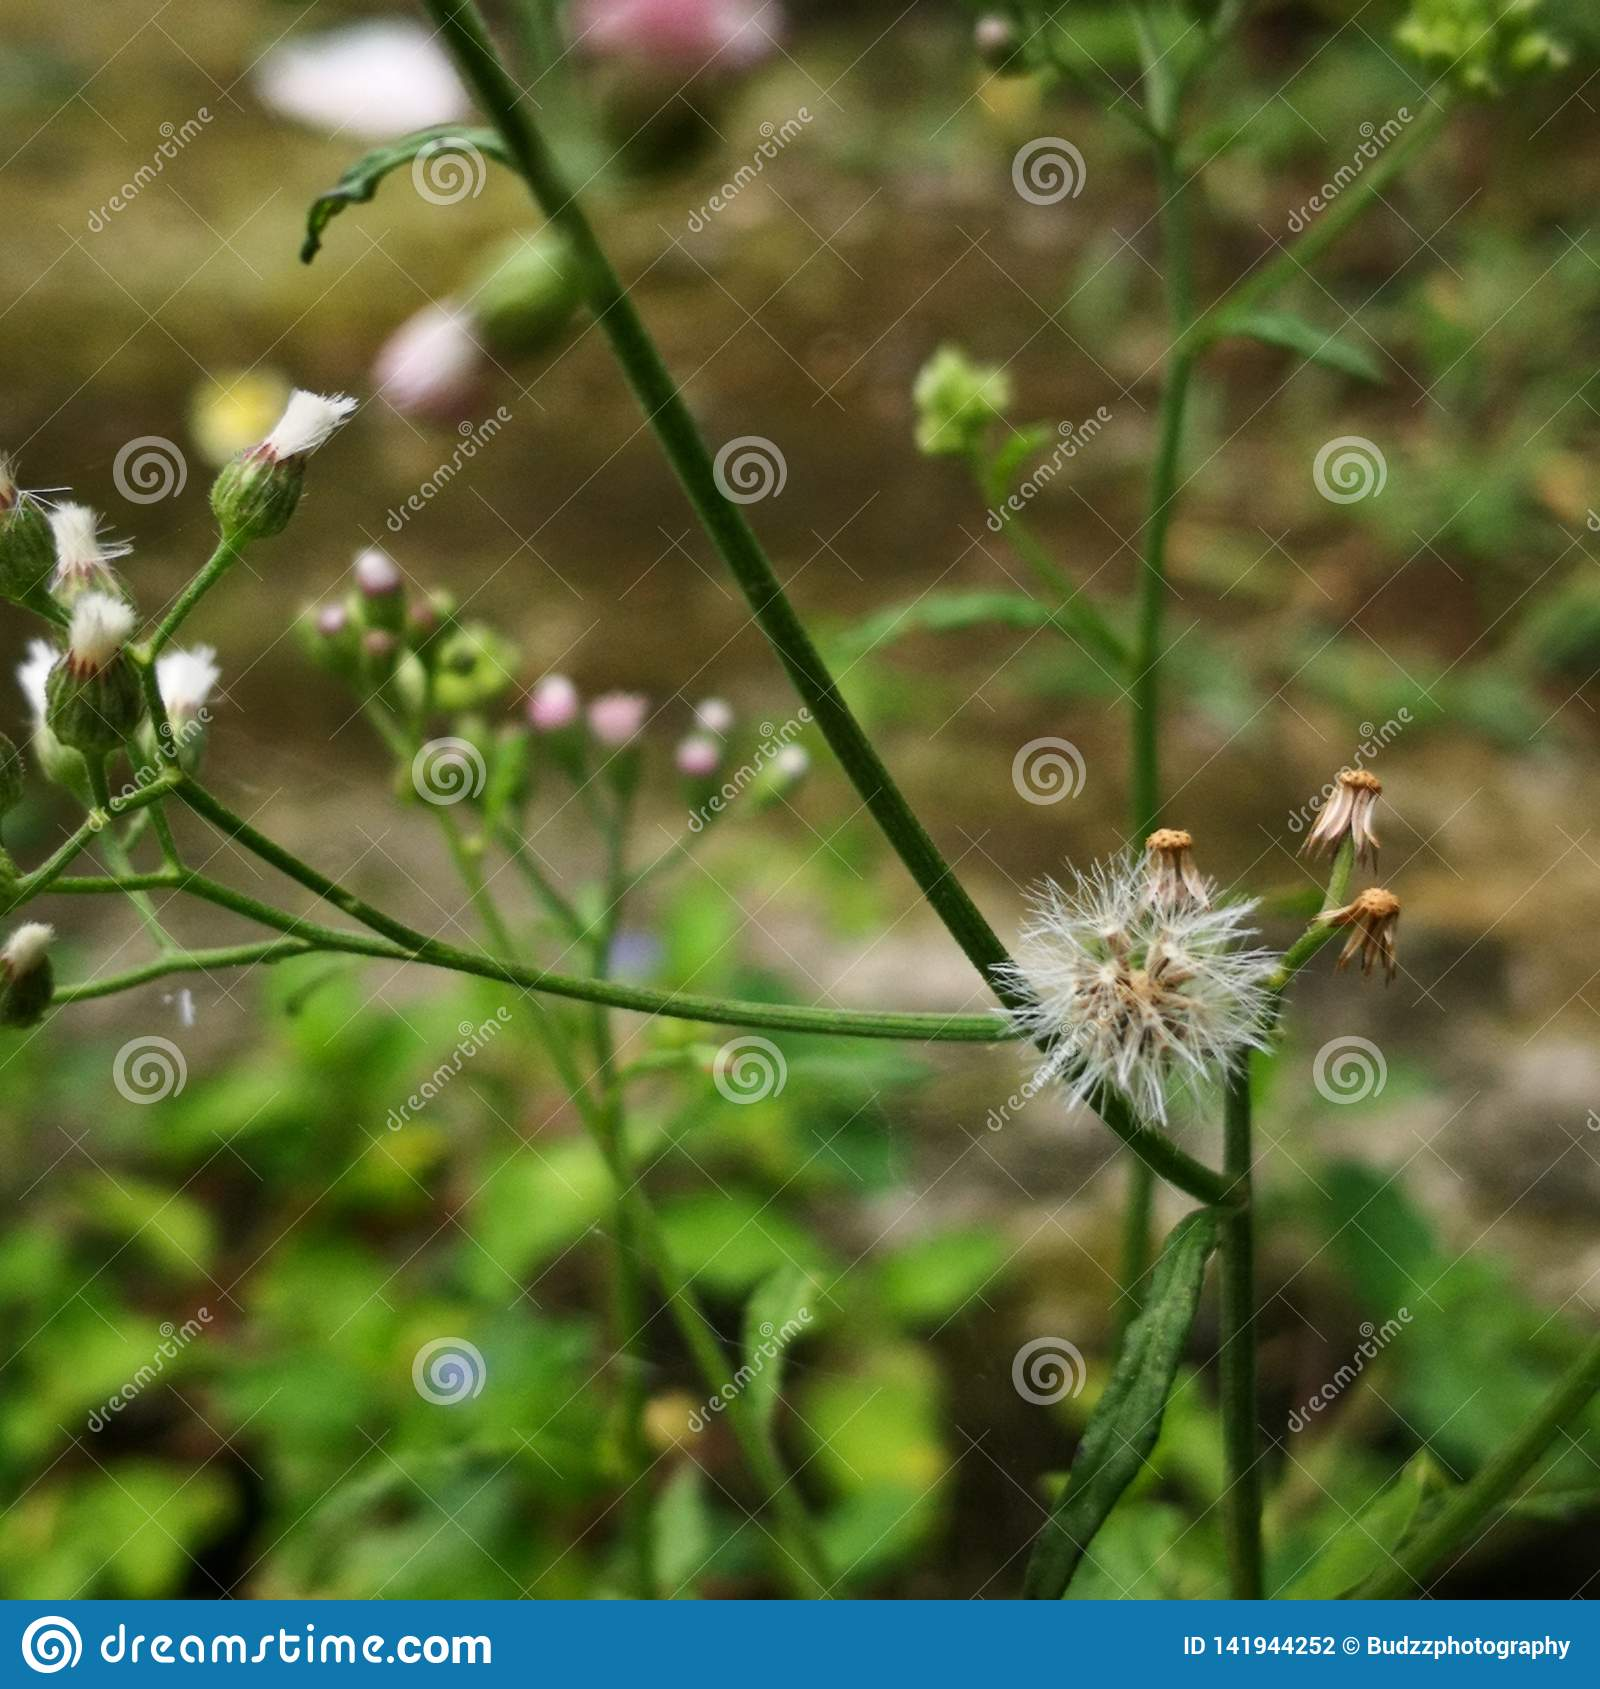 Macro photography of tiny colorful wild grass flower or dandelion. Copy space added.